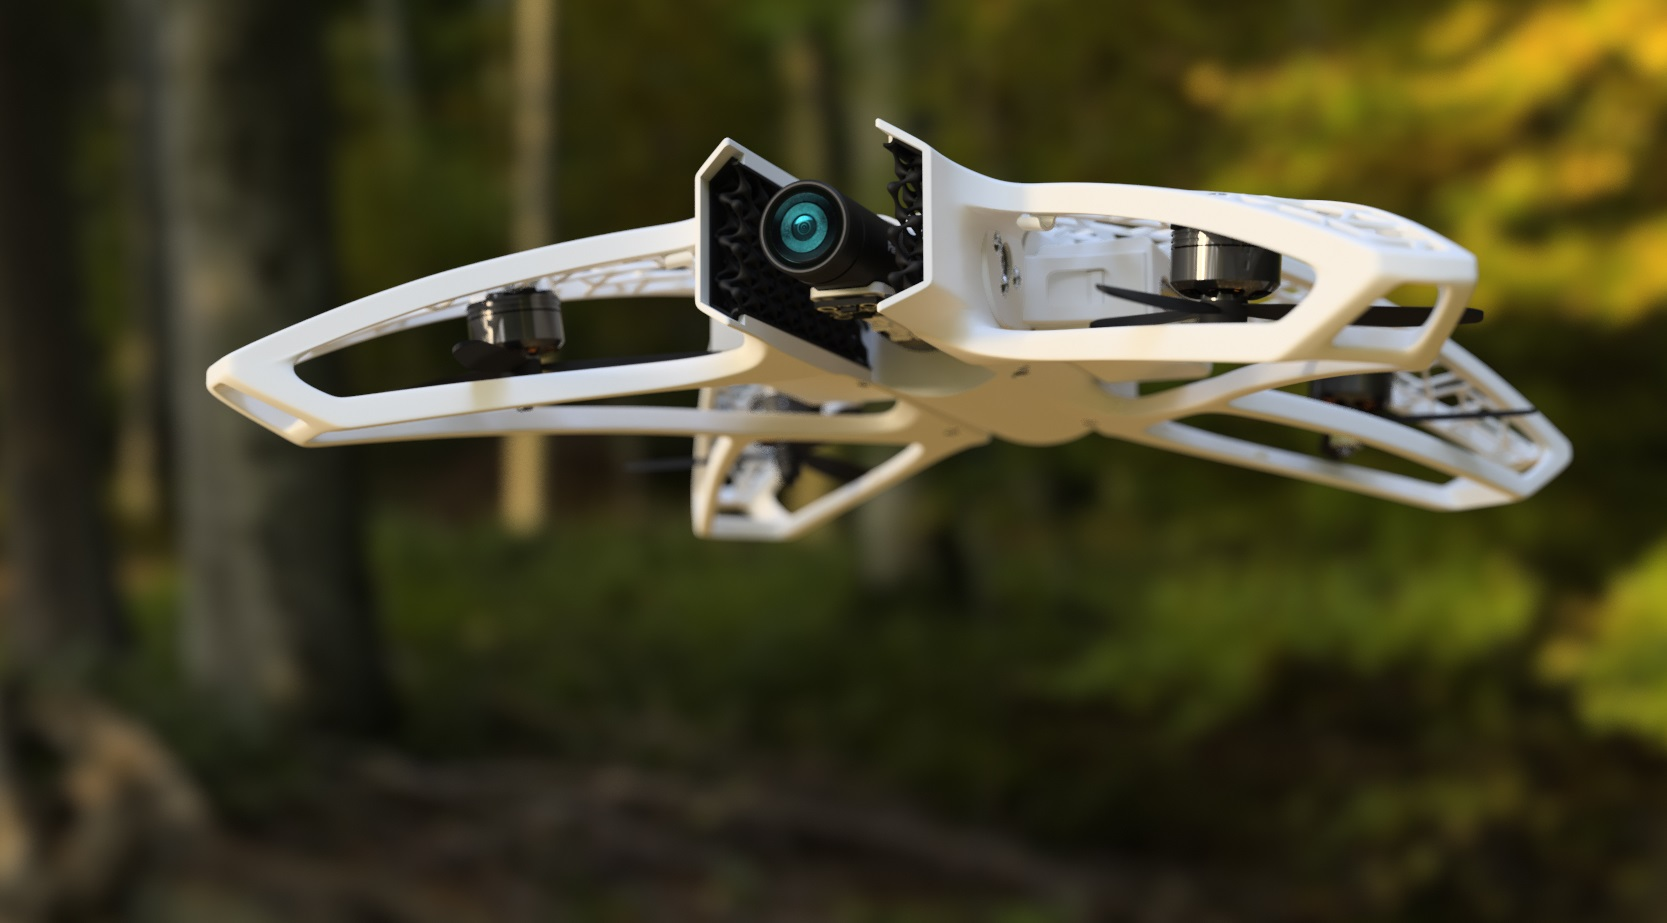 Top 11 of the best 3D printed drone projects